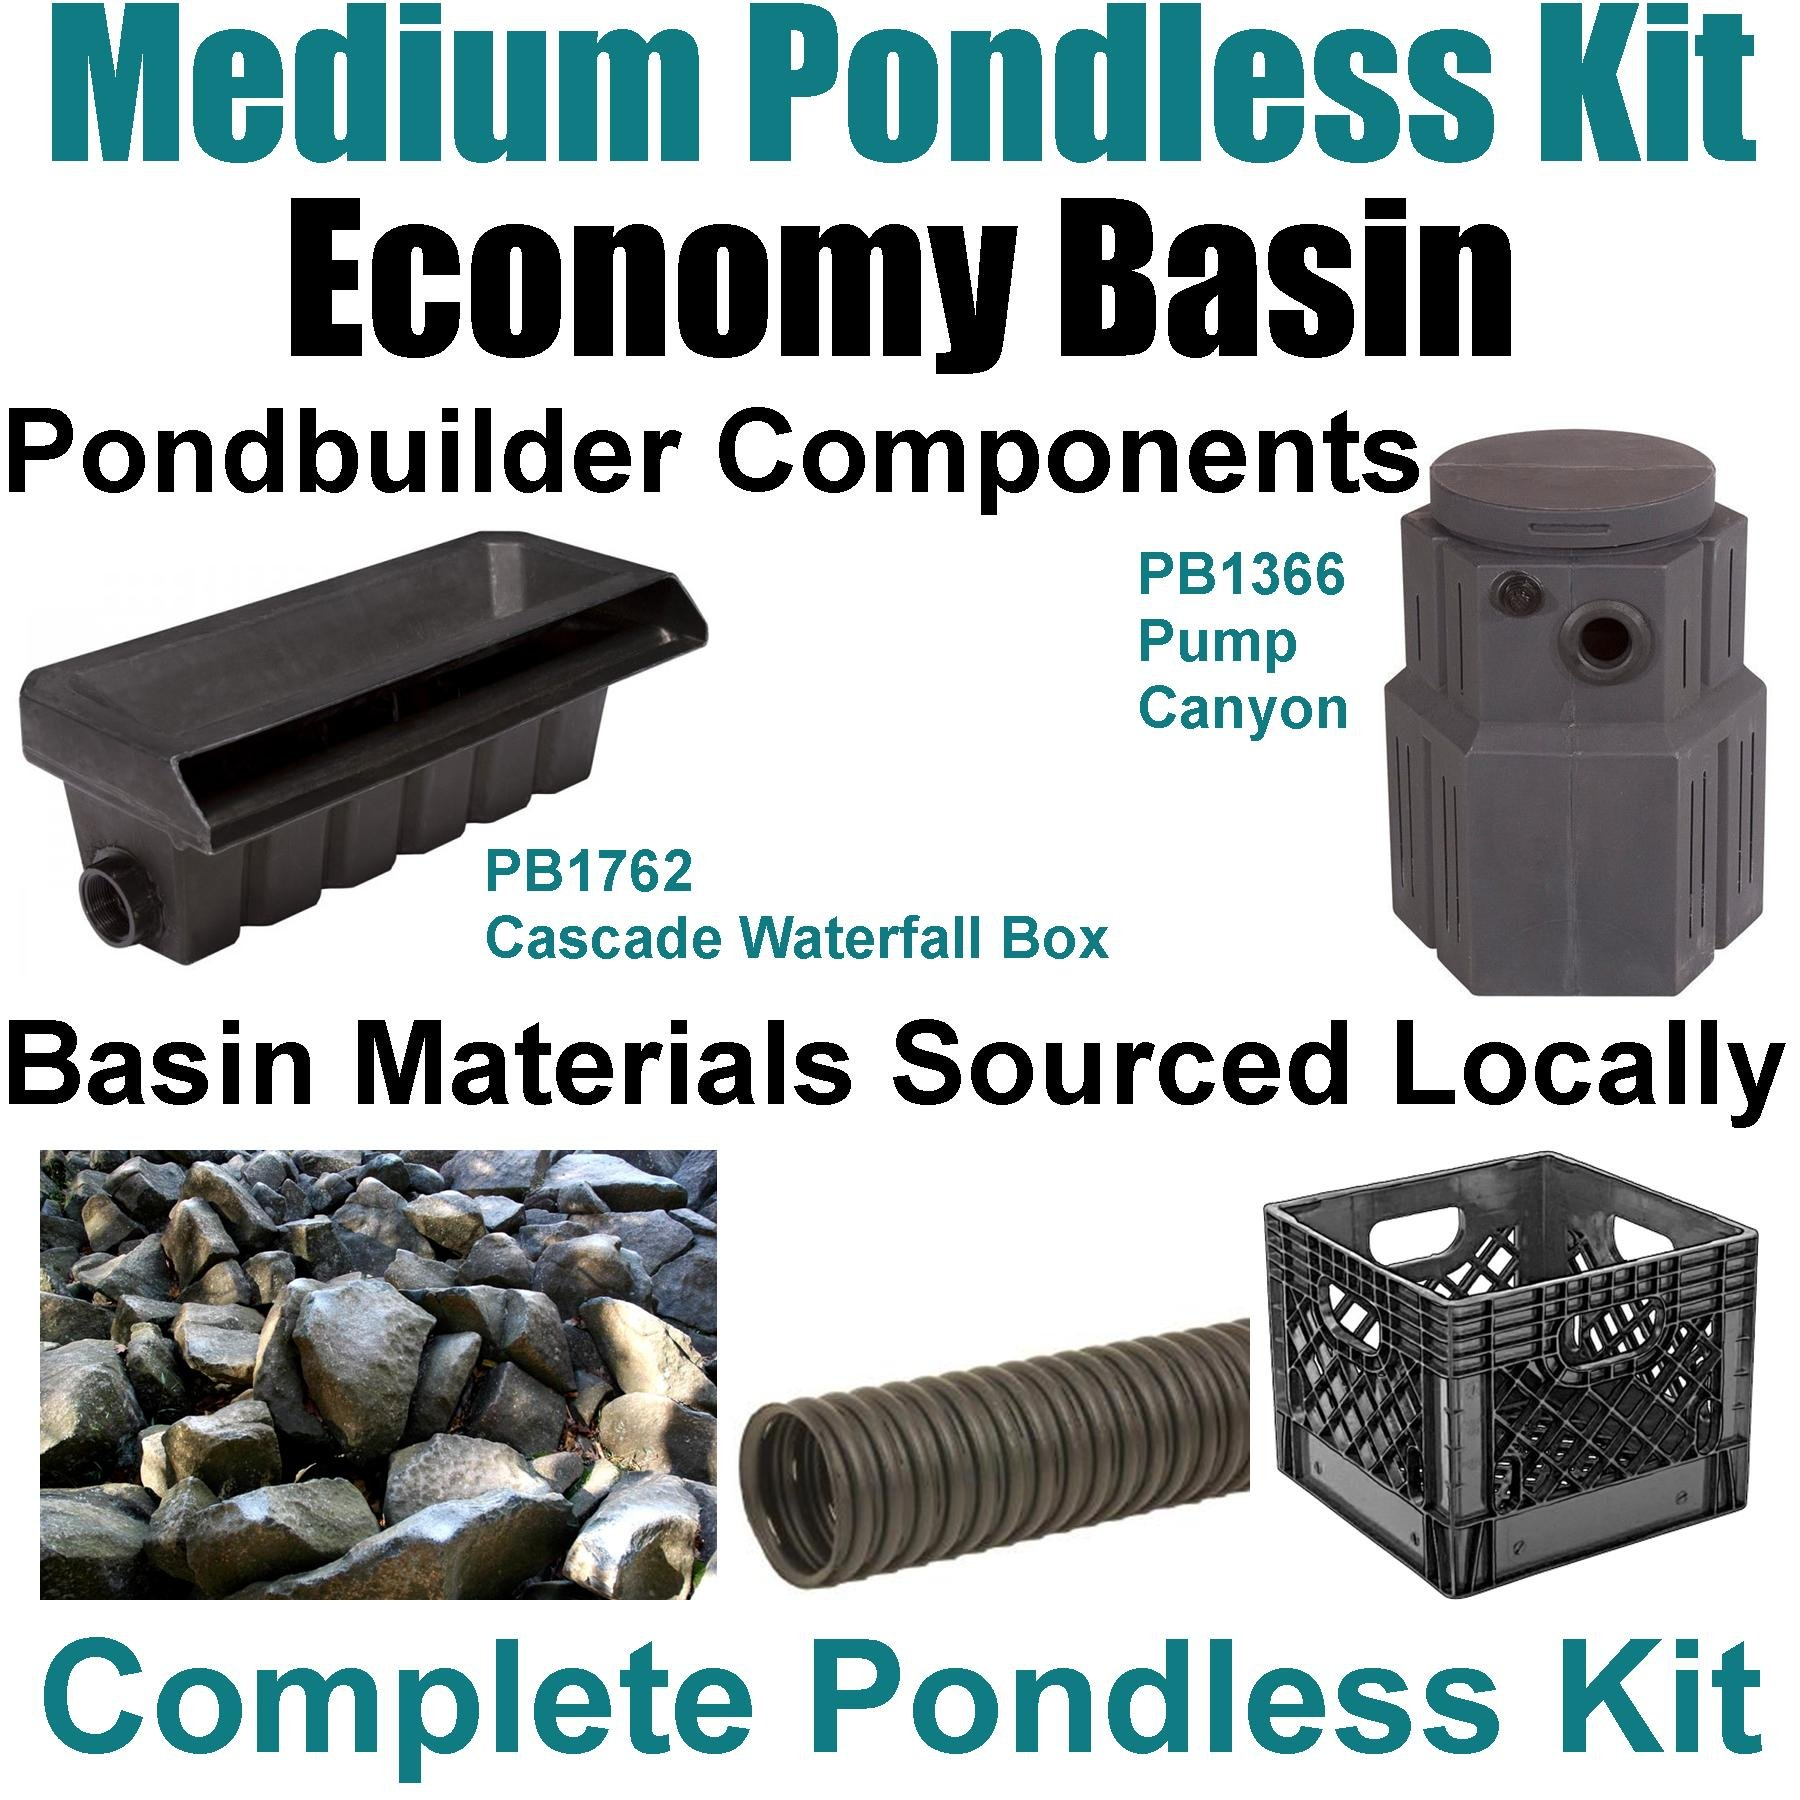 10' x 20' Medium Pondless Waterfall Kit, Economy Basin Kit - Includes Pondbuilder Waterfall Box & Pump Canyon, 4,100 GPH Pump - PMDP8 by Patriot